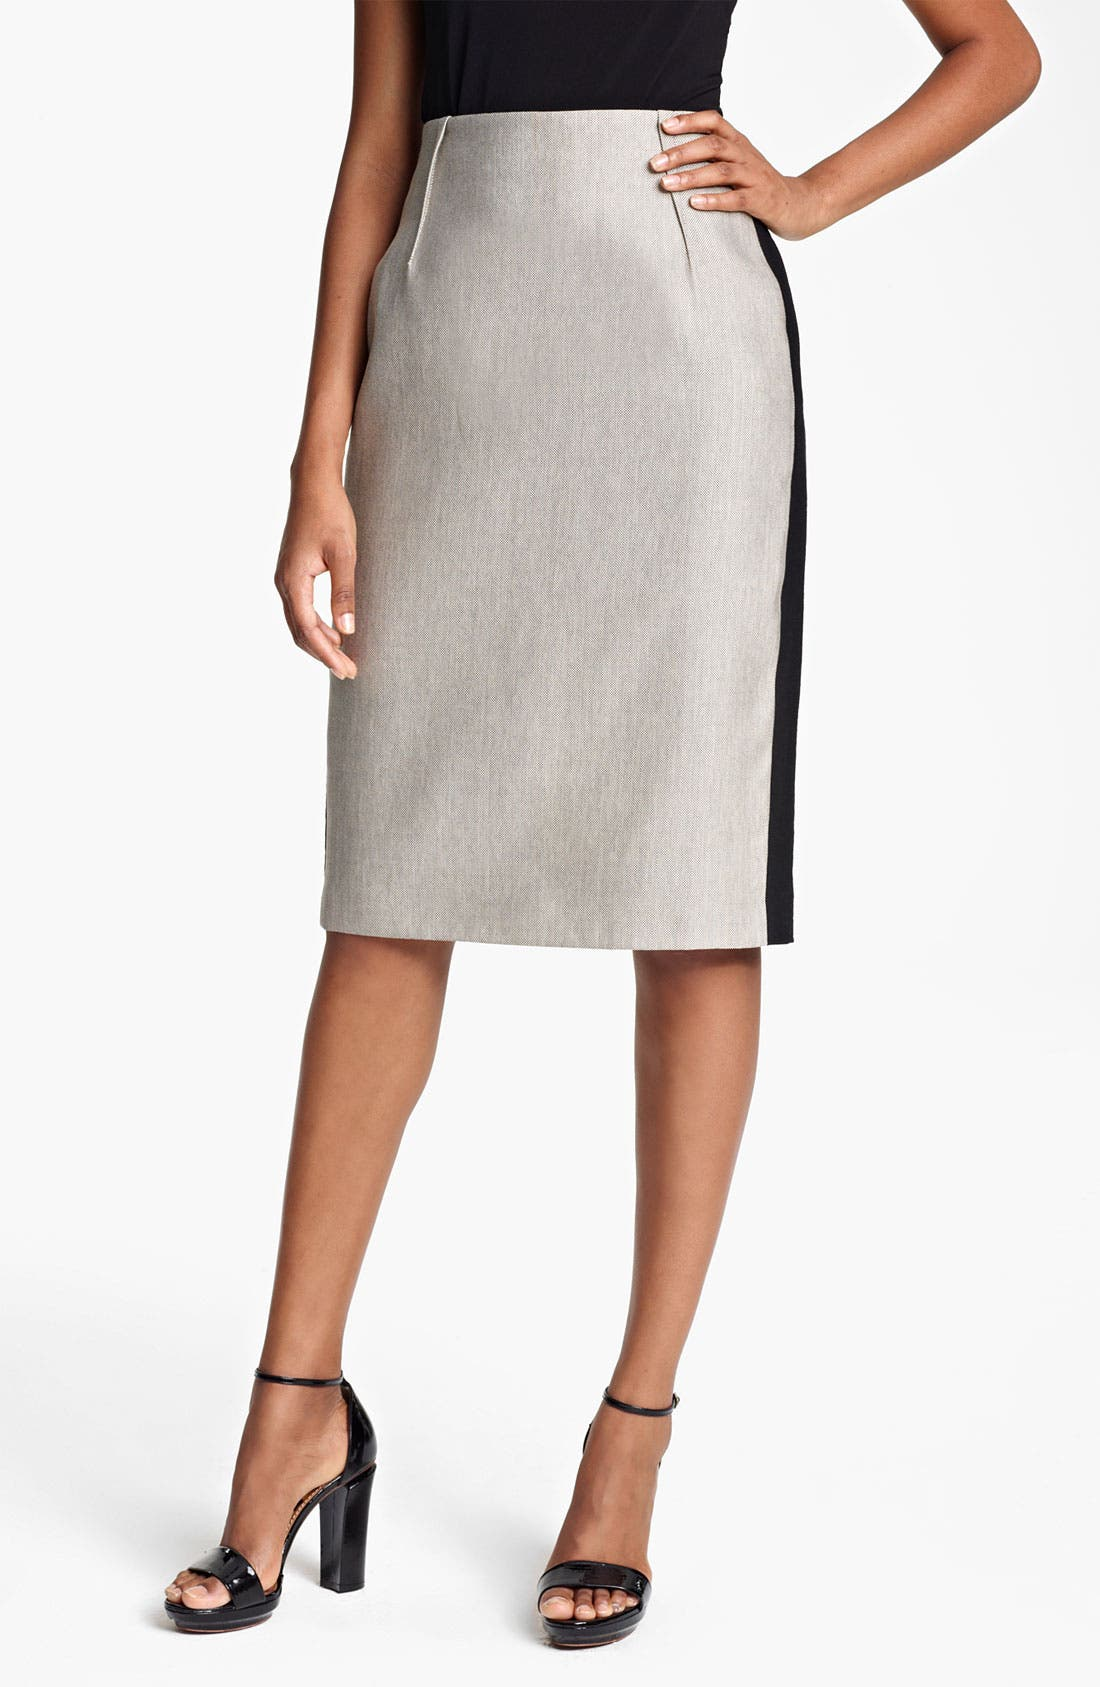 Alternate Image 1 Selected - Lida Baday Raffia Pencil Skirt